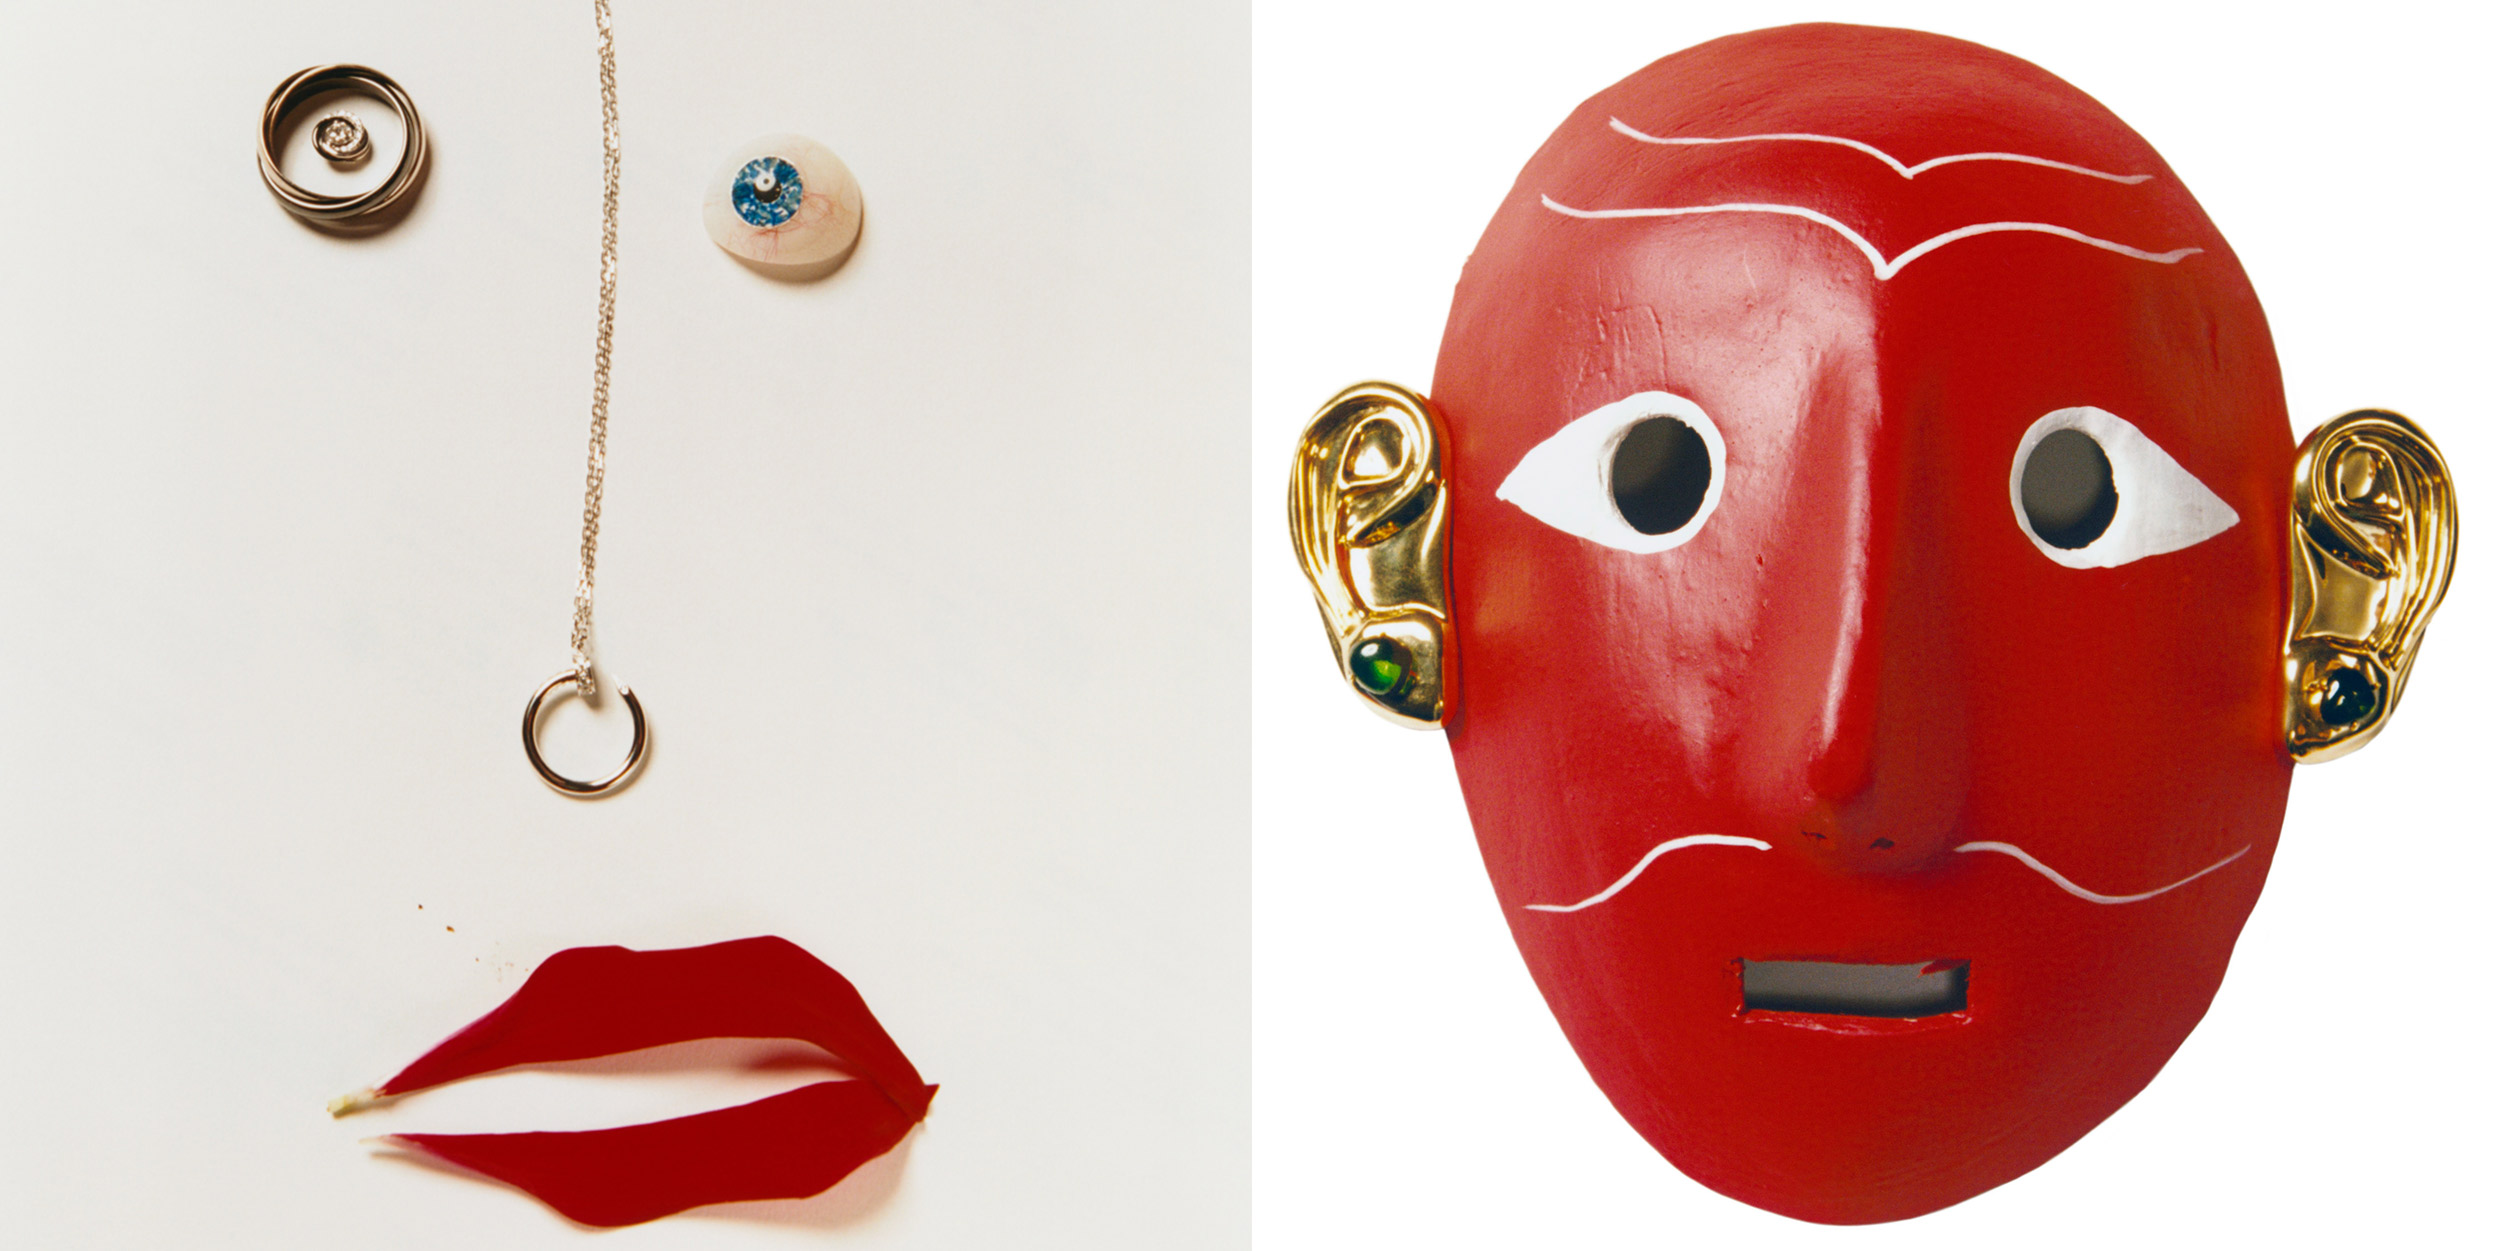 Our favorite accessories become a whimsical cast of high-fashion characters